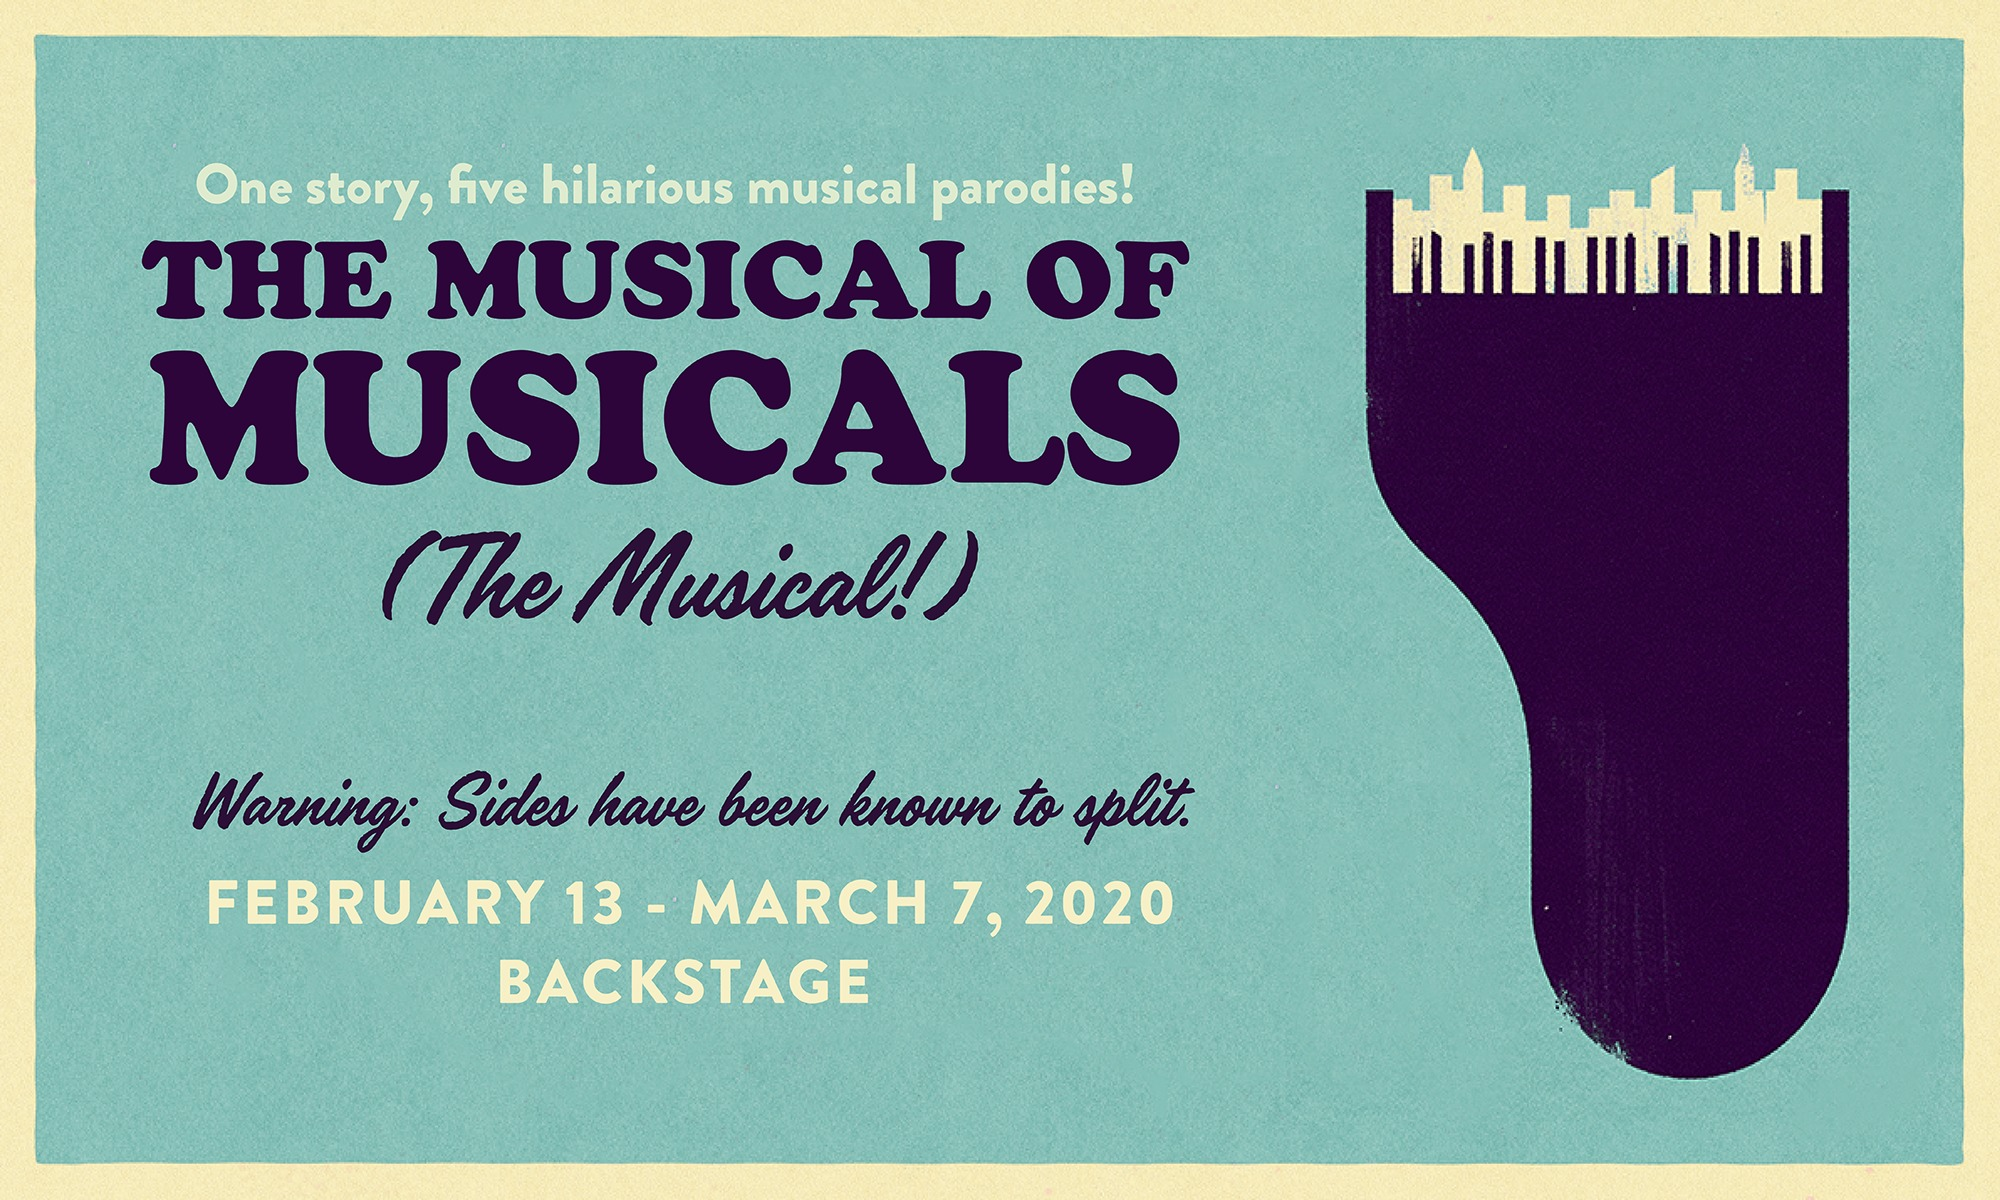 The Musical of Musicals (The Musical!) - February 13 - March 7, 2020